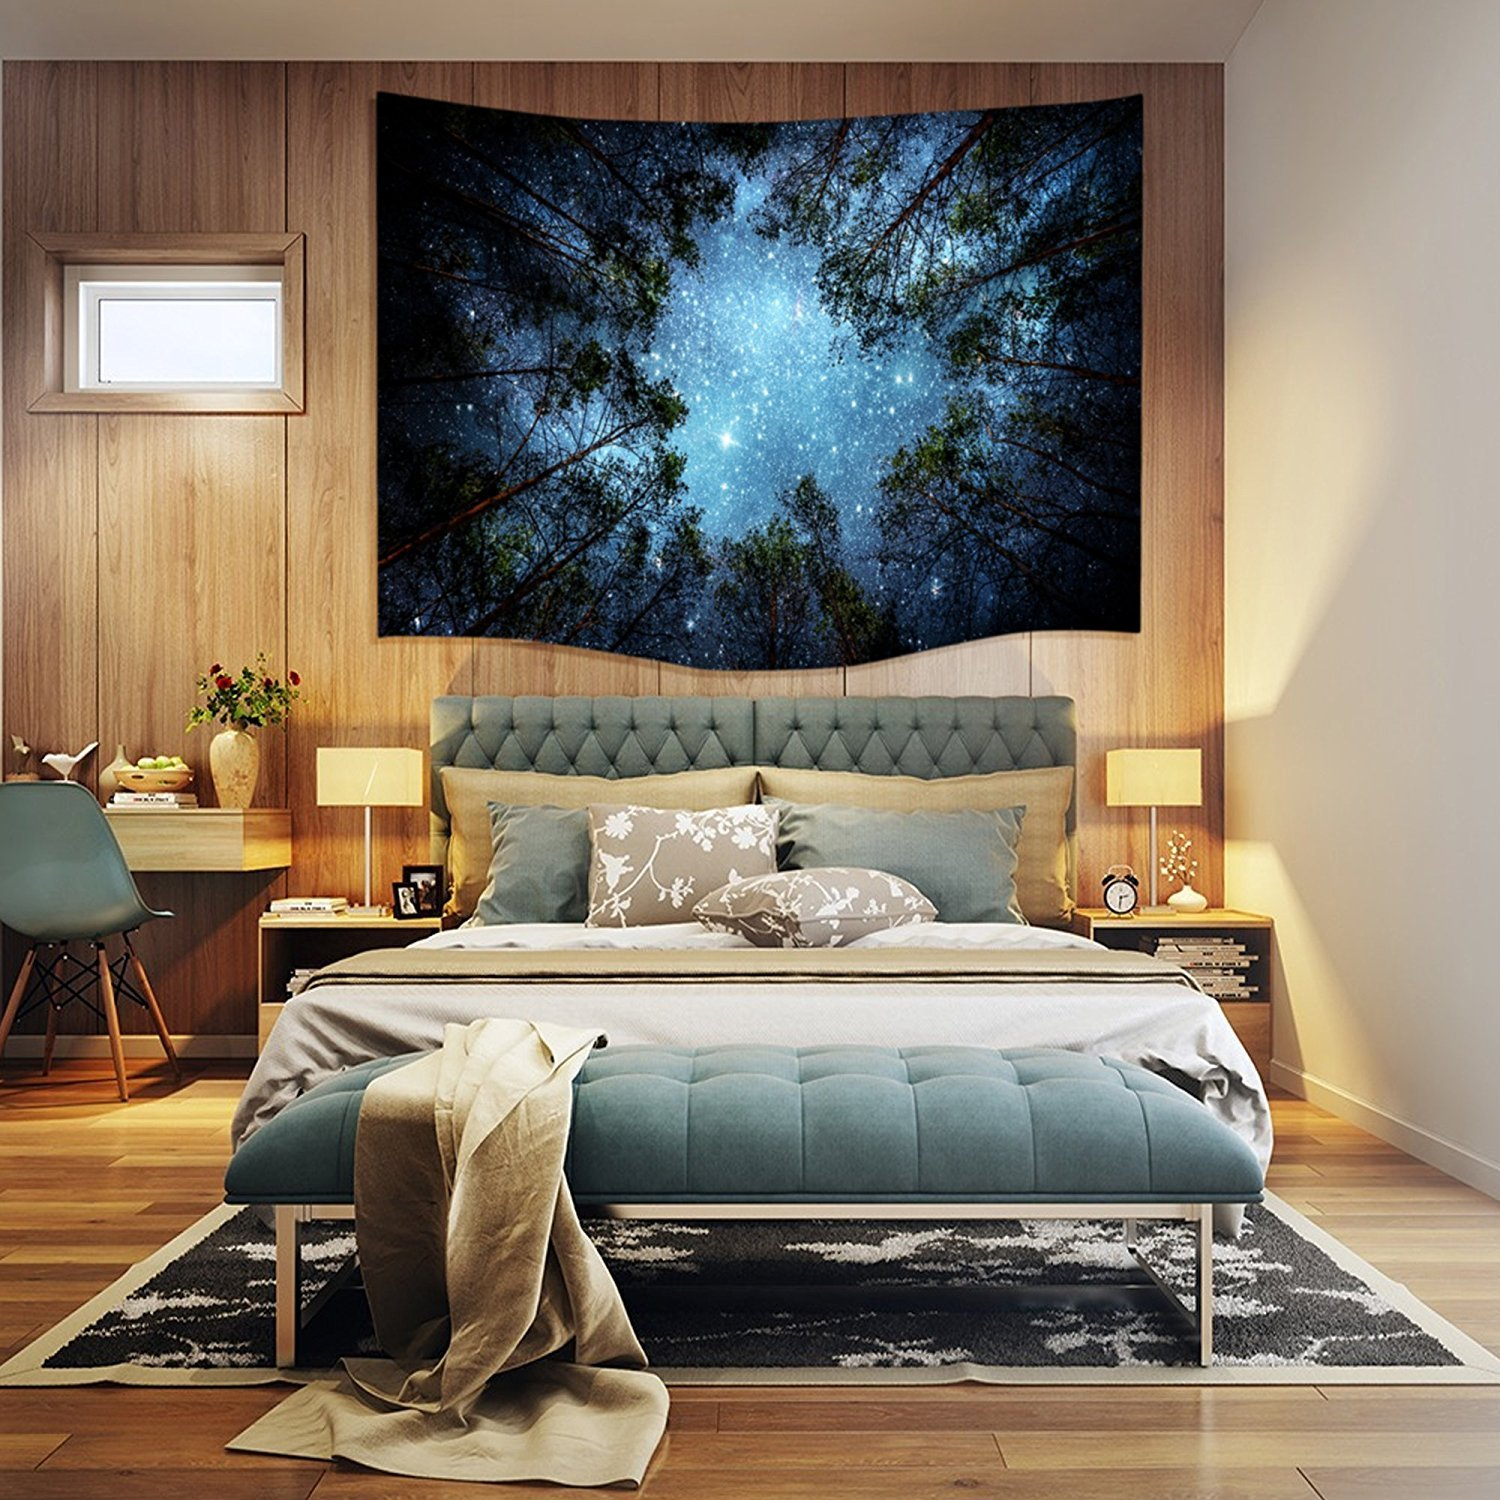 Celestial Galaxy Night Sky Full of Stars Starry Night Wall Tapestry Forest Nature View Hanging Artistic Home Décor (60*40 inch) Tiaronics